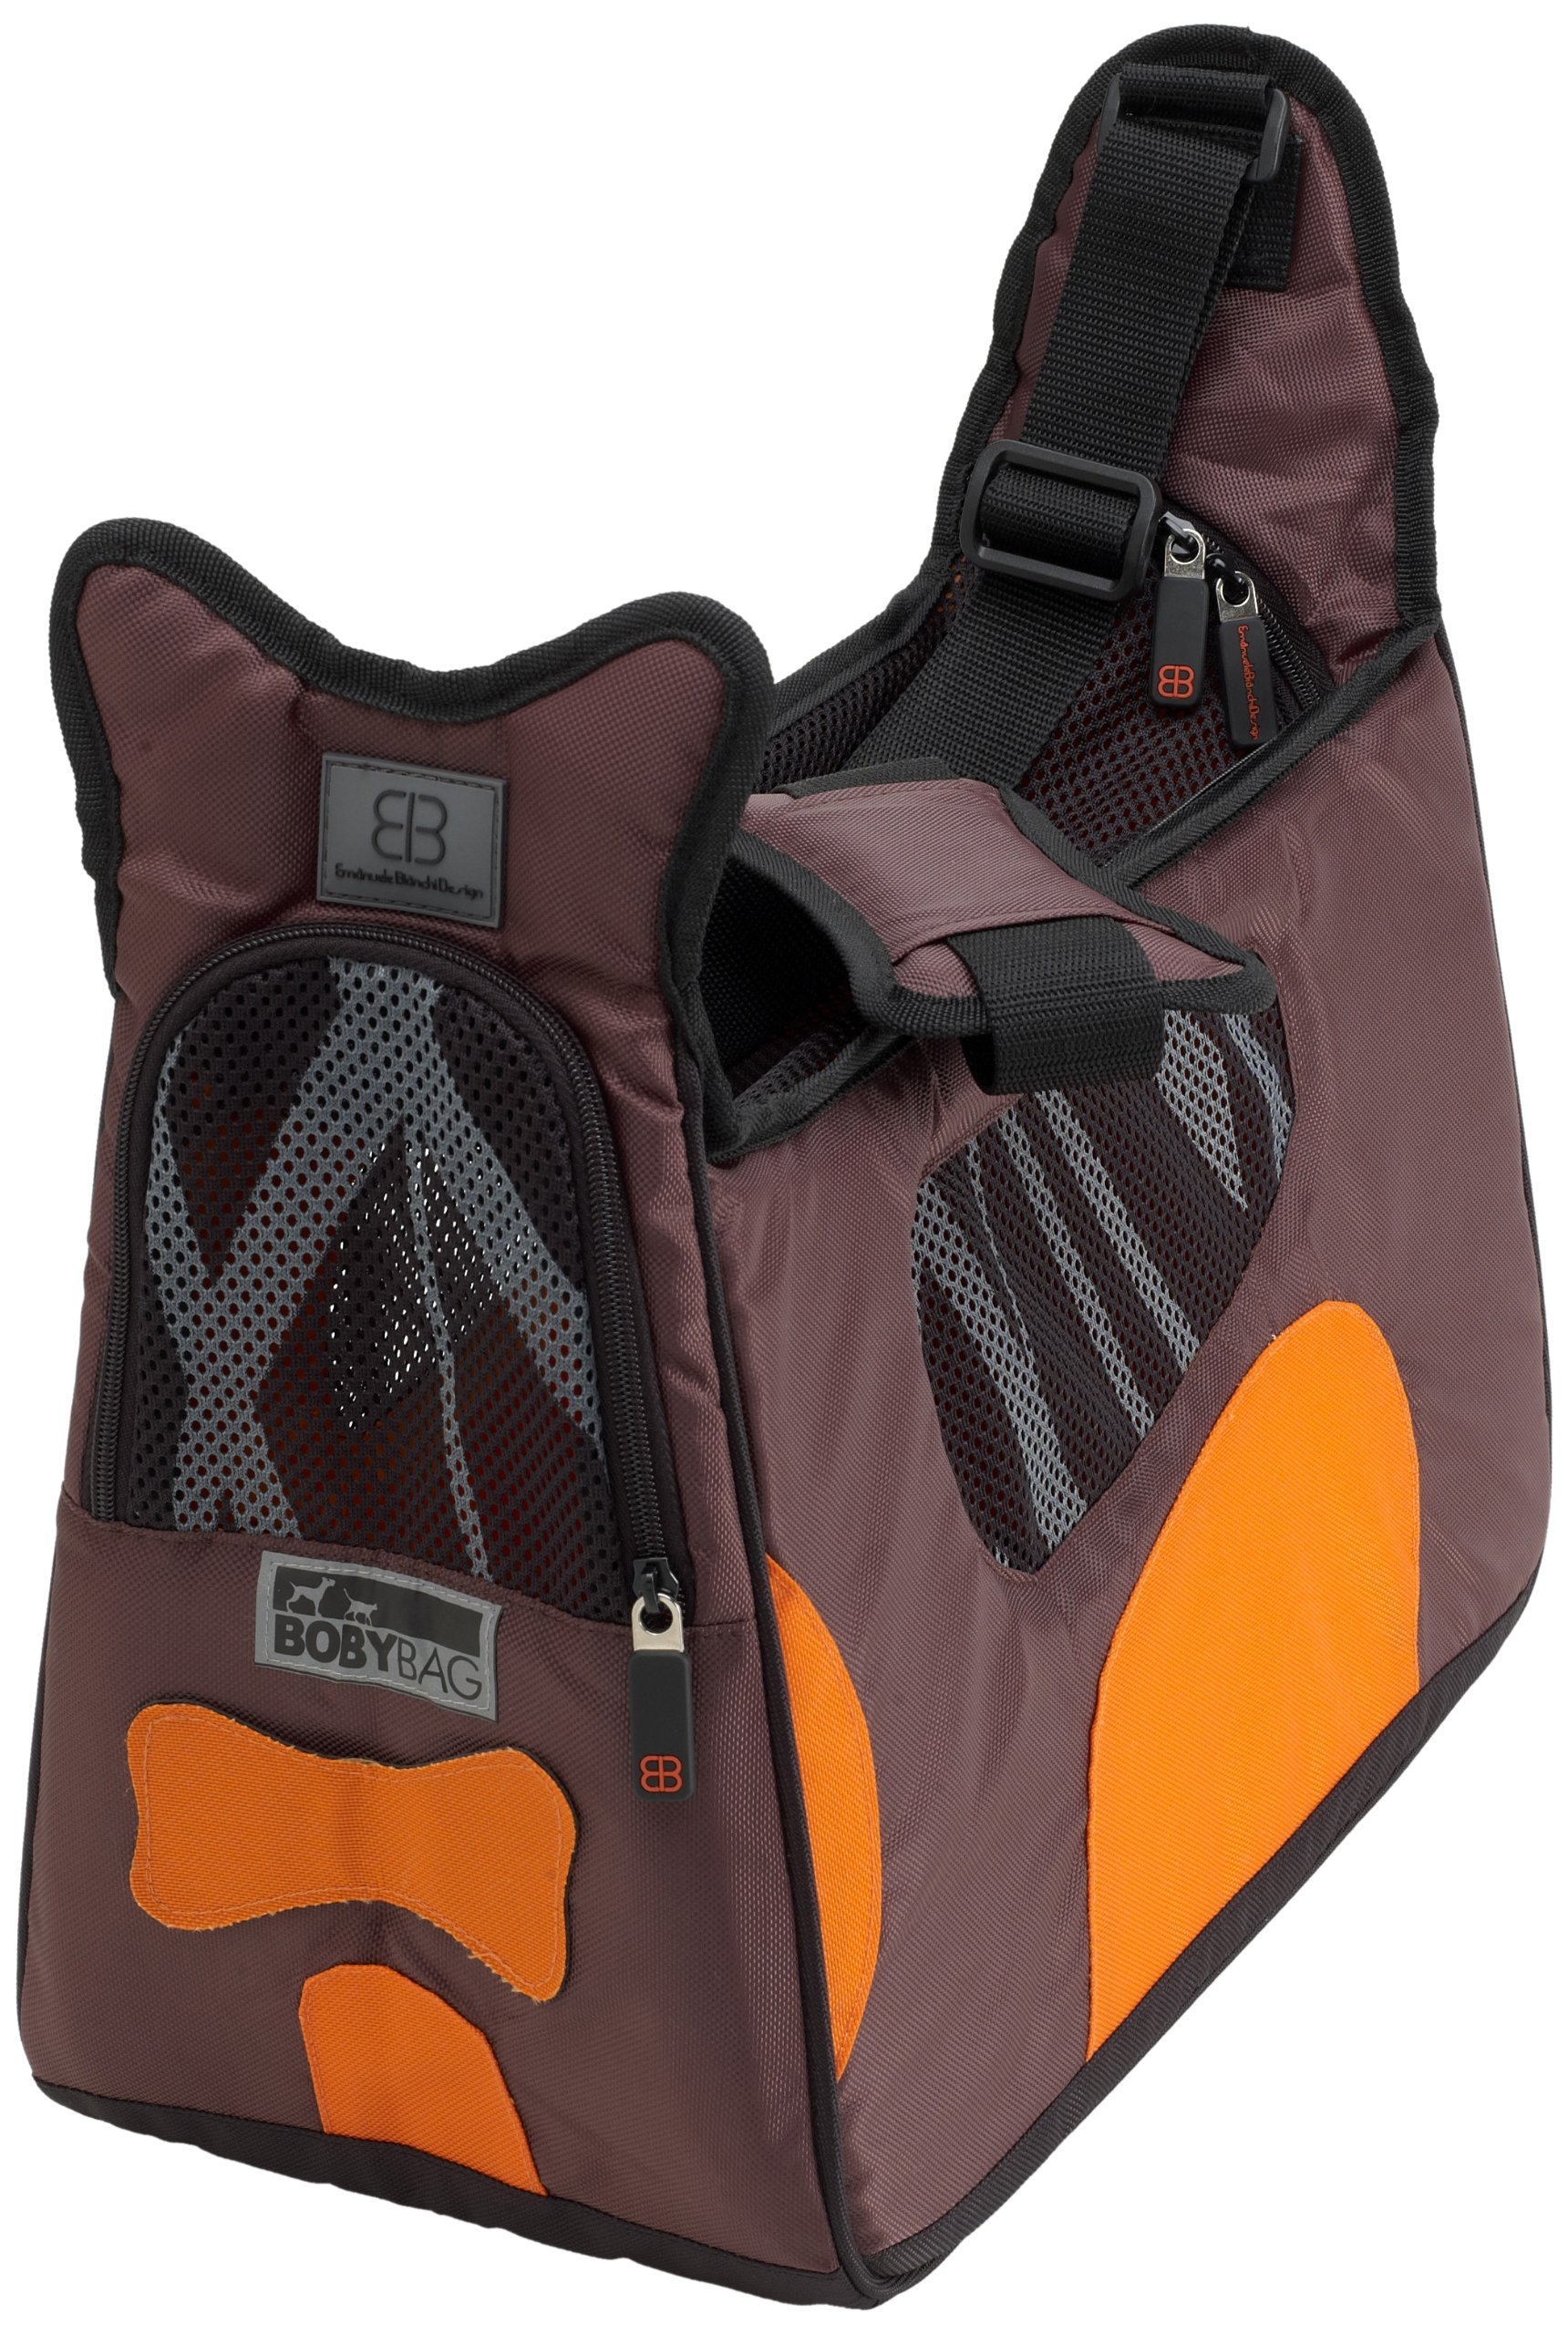 Petego Boby Bag Pet Carrier with Forma Frame, Brown and Orange